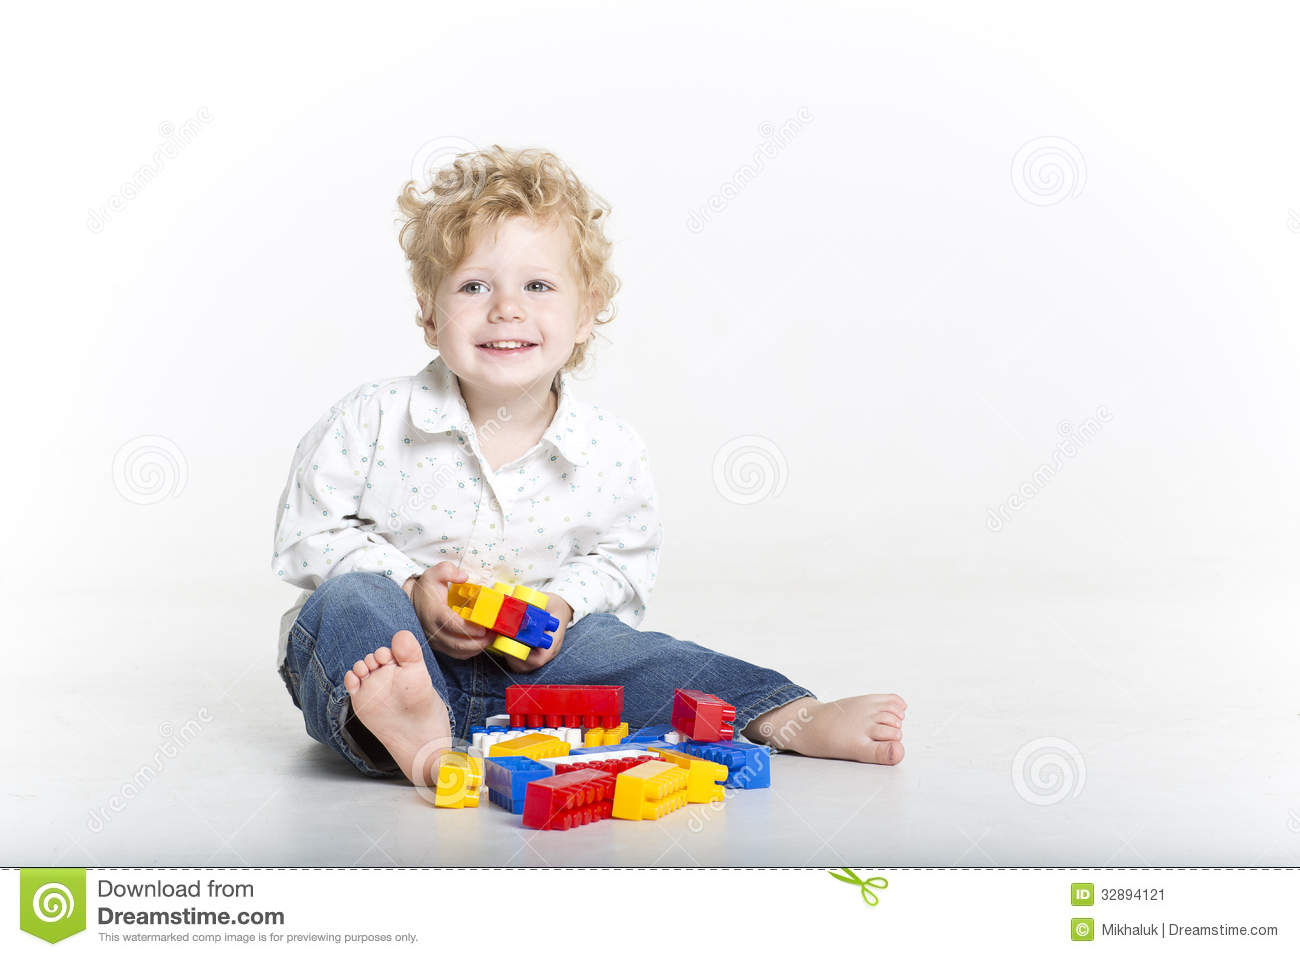 Cute Toddler Is Building With Legos Stock Image   Image  32894121